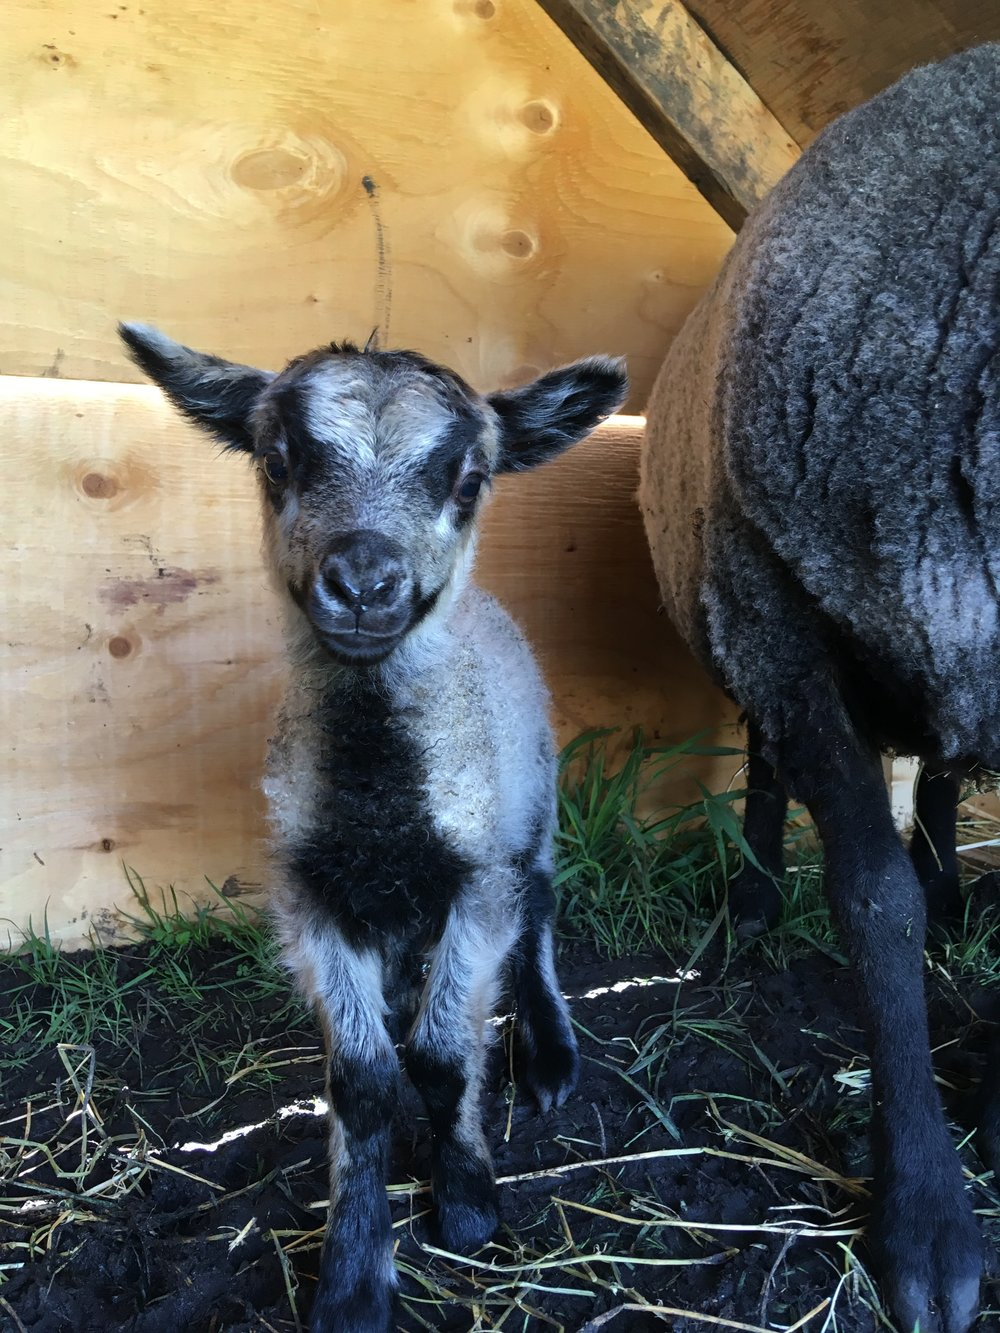 This ewe lamb was born on May 24, 2018 weighing 2. kg. Her mother is Bryn and the sire is Muddy, both are purebred shetland sheep. She has a twin sister, with a lighter brown face. She was much larger than her sister when she was born, but is much more timid than her sister. She hides behind Bryn and is the hardest one for me to take photo's of. Her fleece is beautiful and I look forward to watching it develop this year!